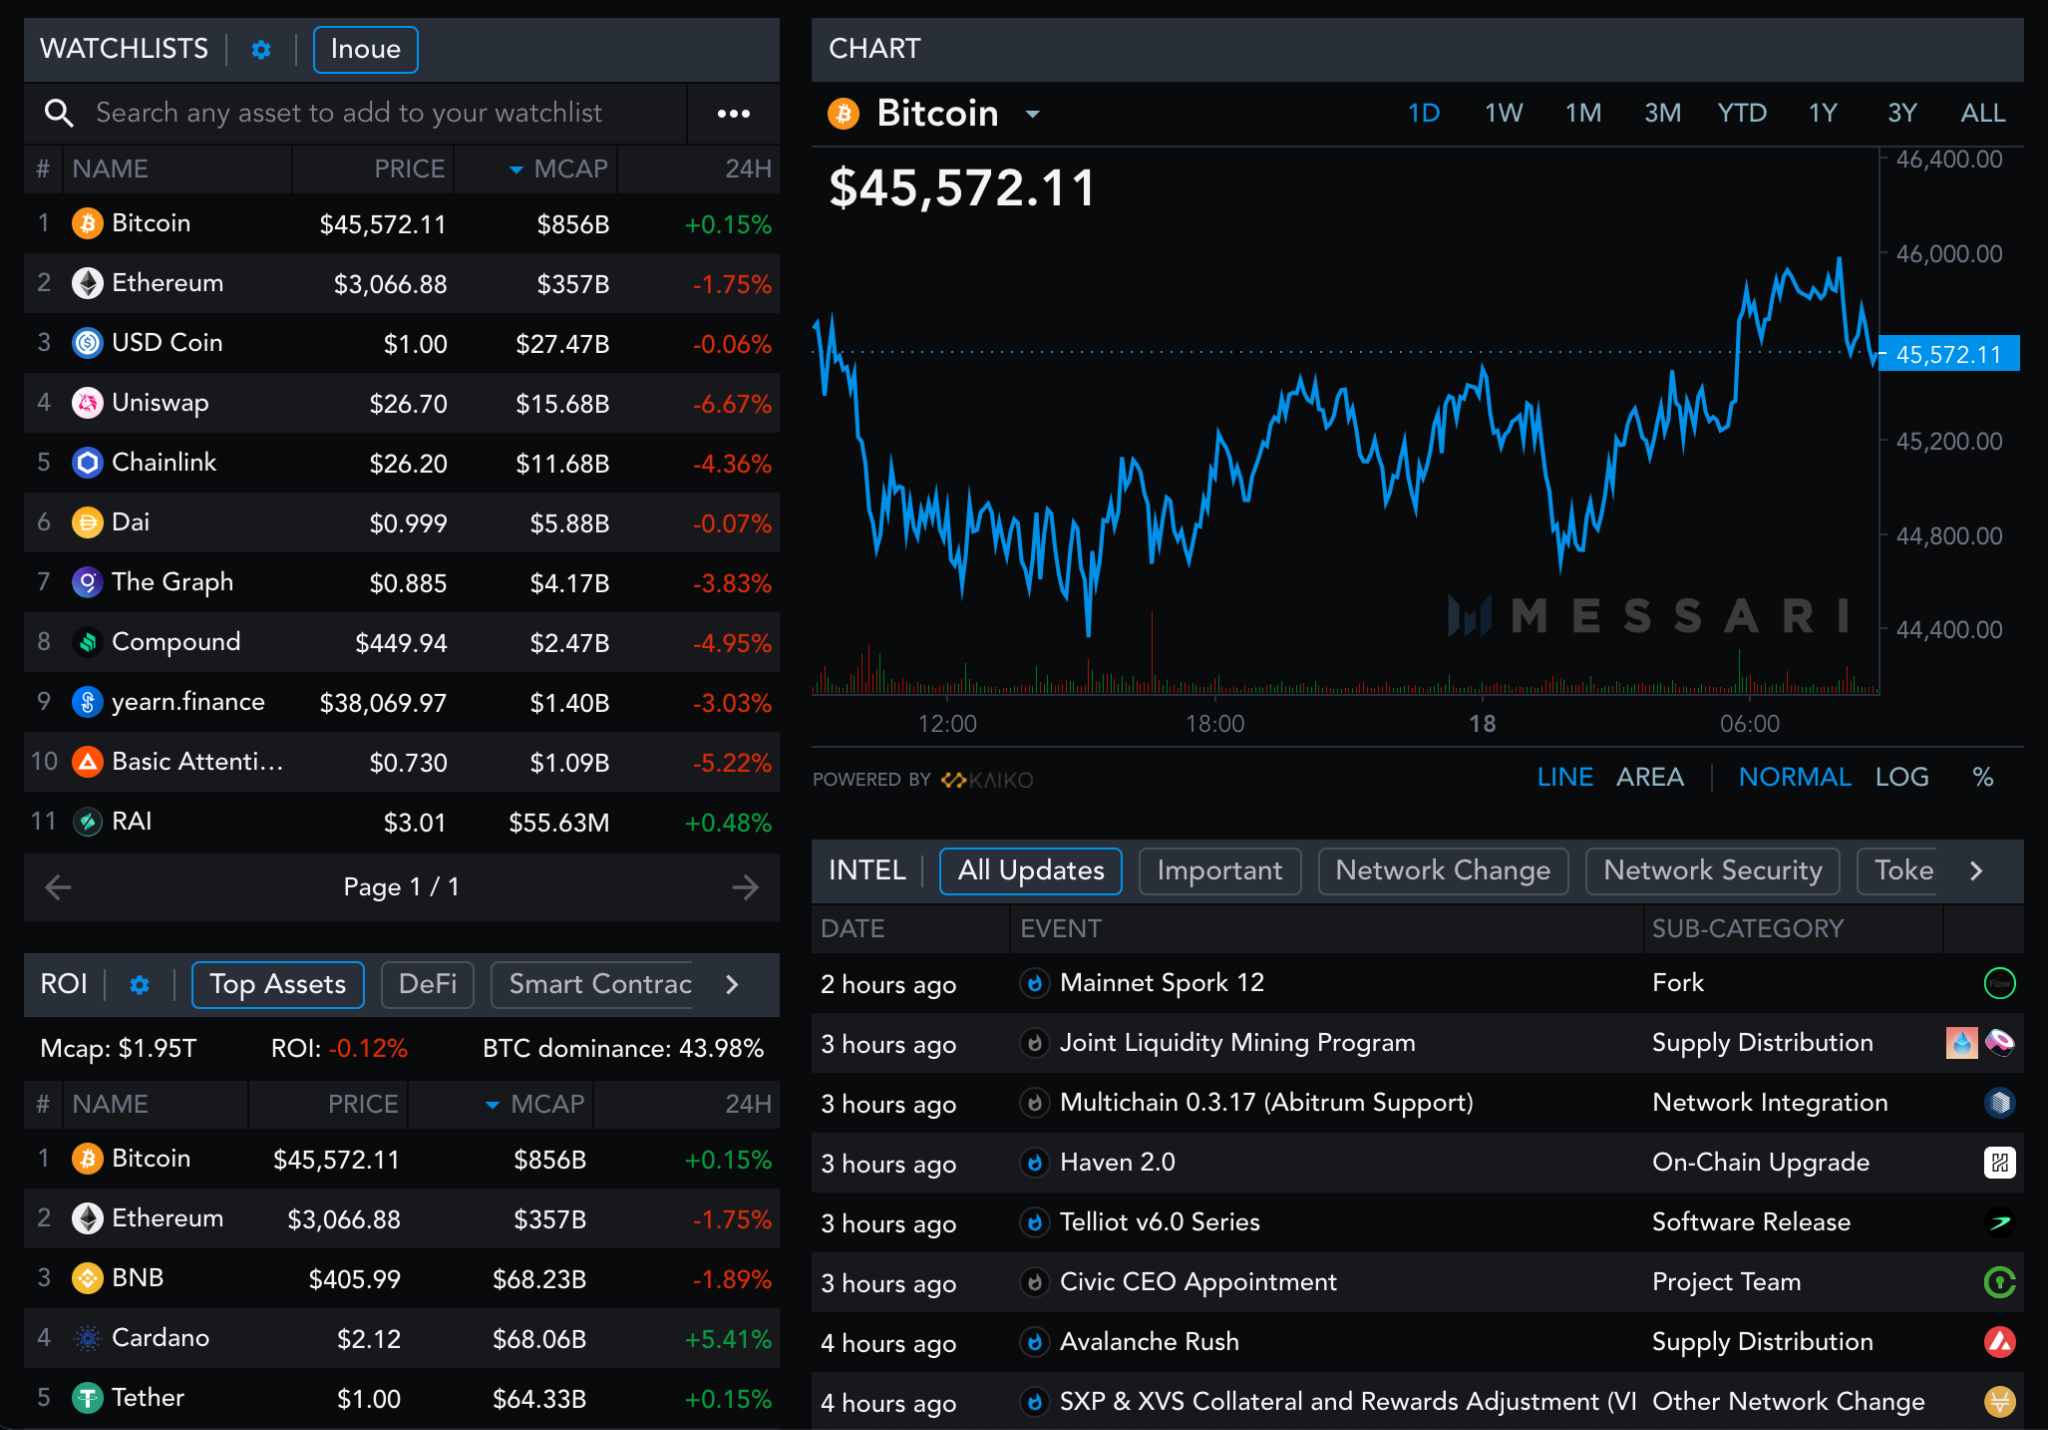 Messari dashboard with a dark background. The dashboard consists of four parts: 1) watchlist tracking assets like Bitcoin or Ethereum, 2) ROI chart, 3) line graph showing real-time Bitcoin price data, and 4) Intel chart, a real-time alerting mechanism.